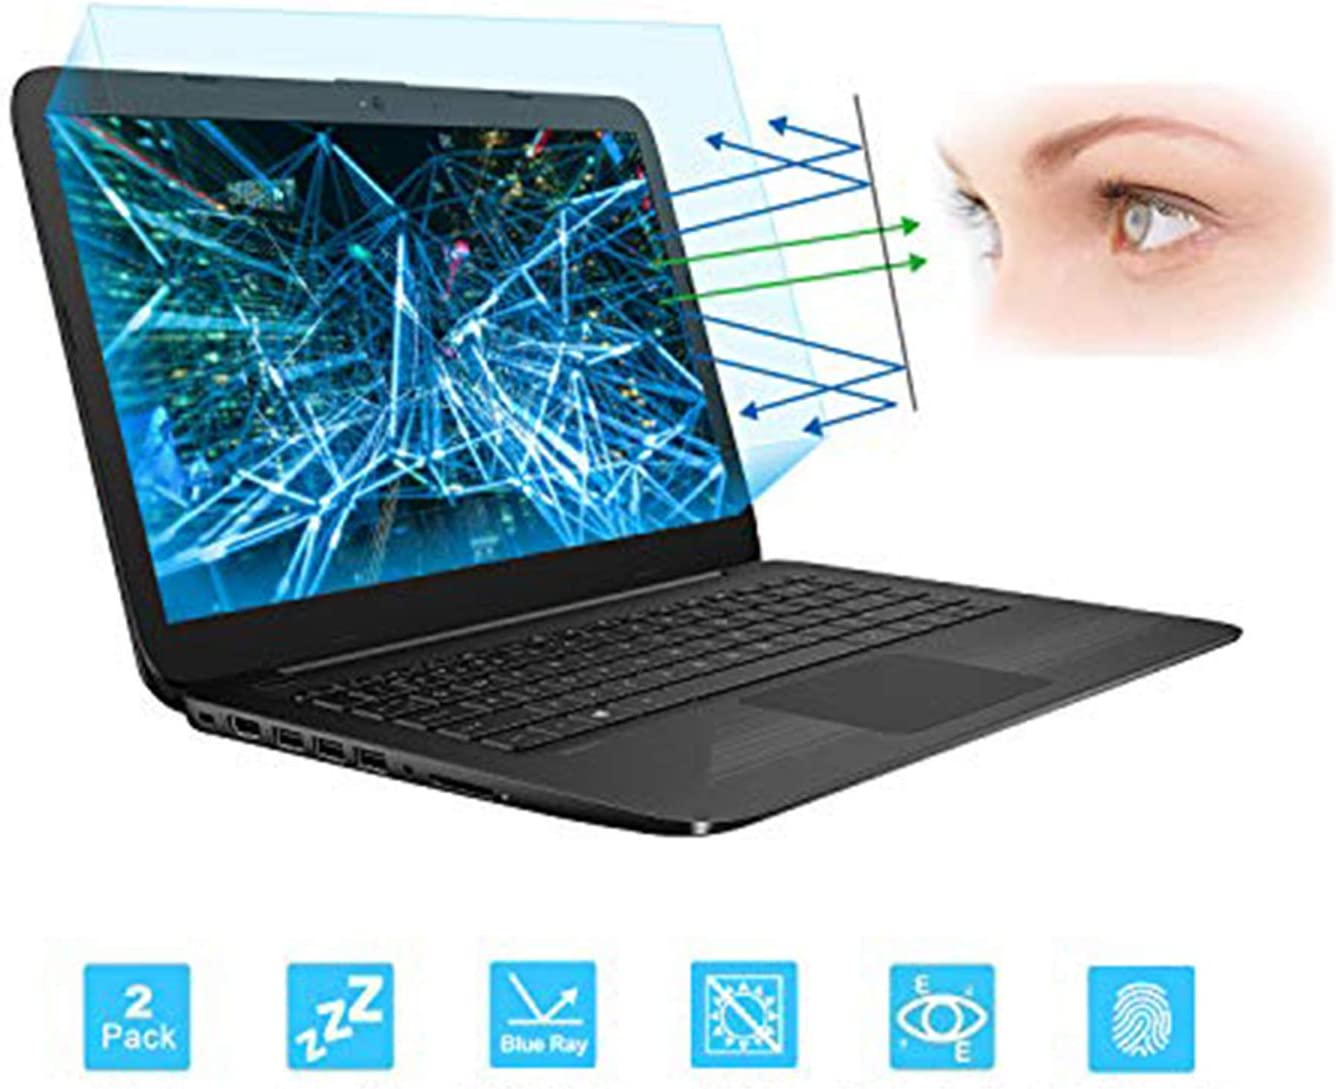 "2 PCS 14"" Laptop Anti Blue Light Anti Glare Screen Protector Compatible with HP Pavilion 14, HP ChromeBook 14, HP Stream 14, Acer Chromebook 14, Acer Aspire 14, ASUS VivoBook 14 Screen Protector"